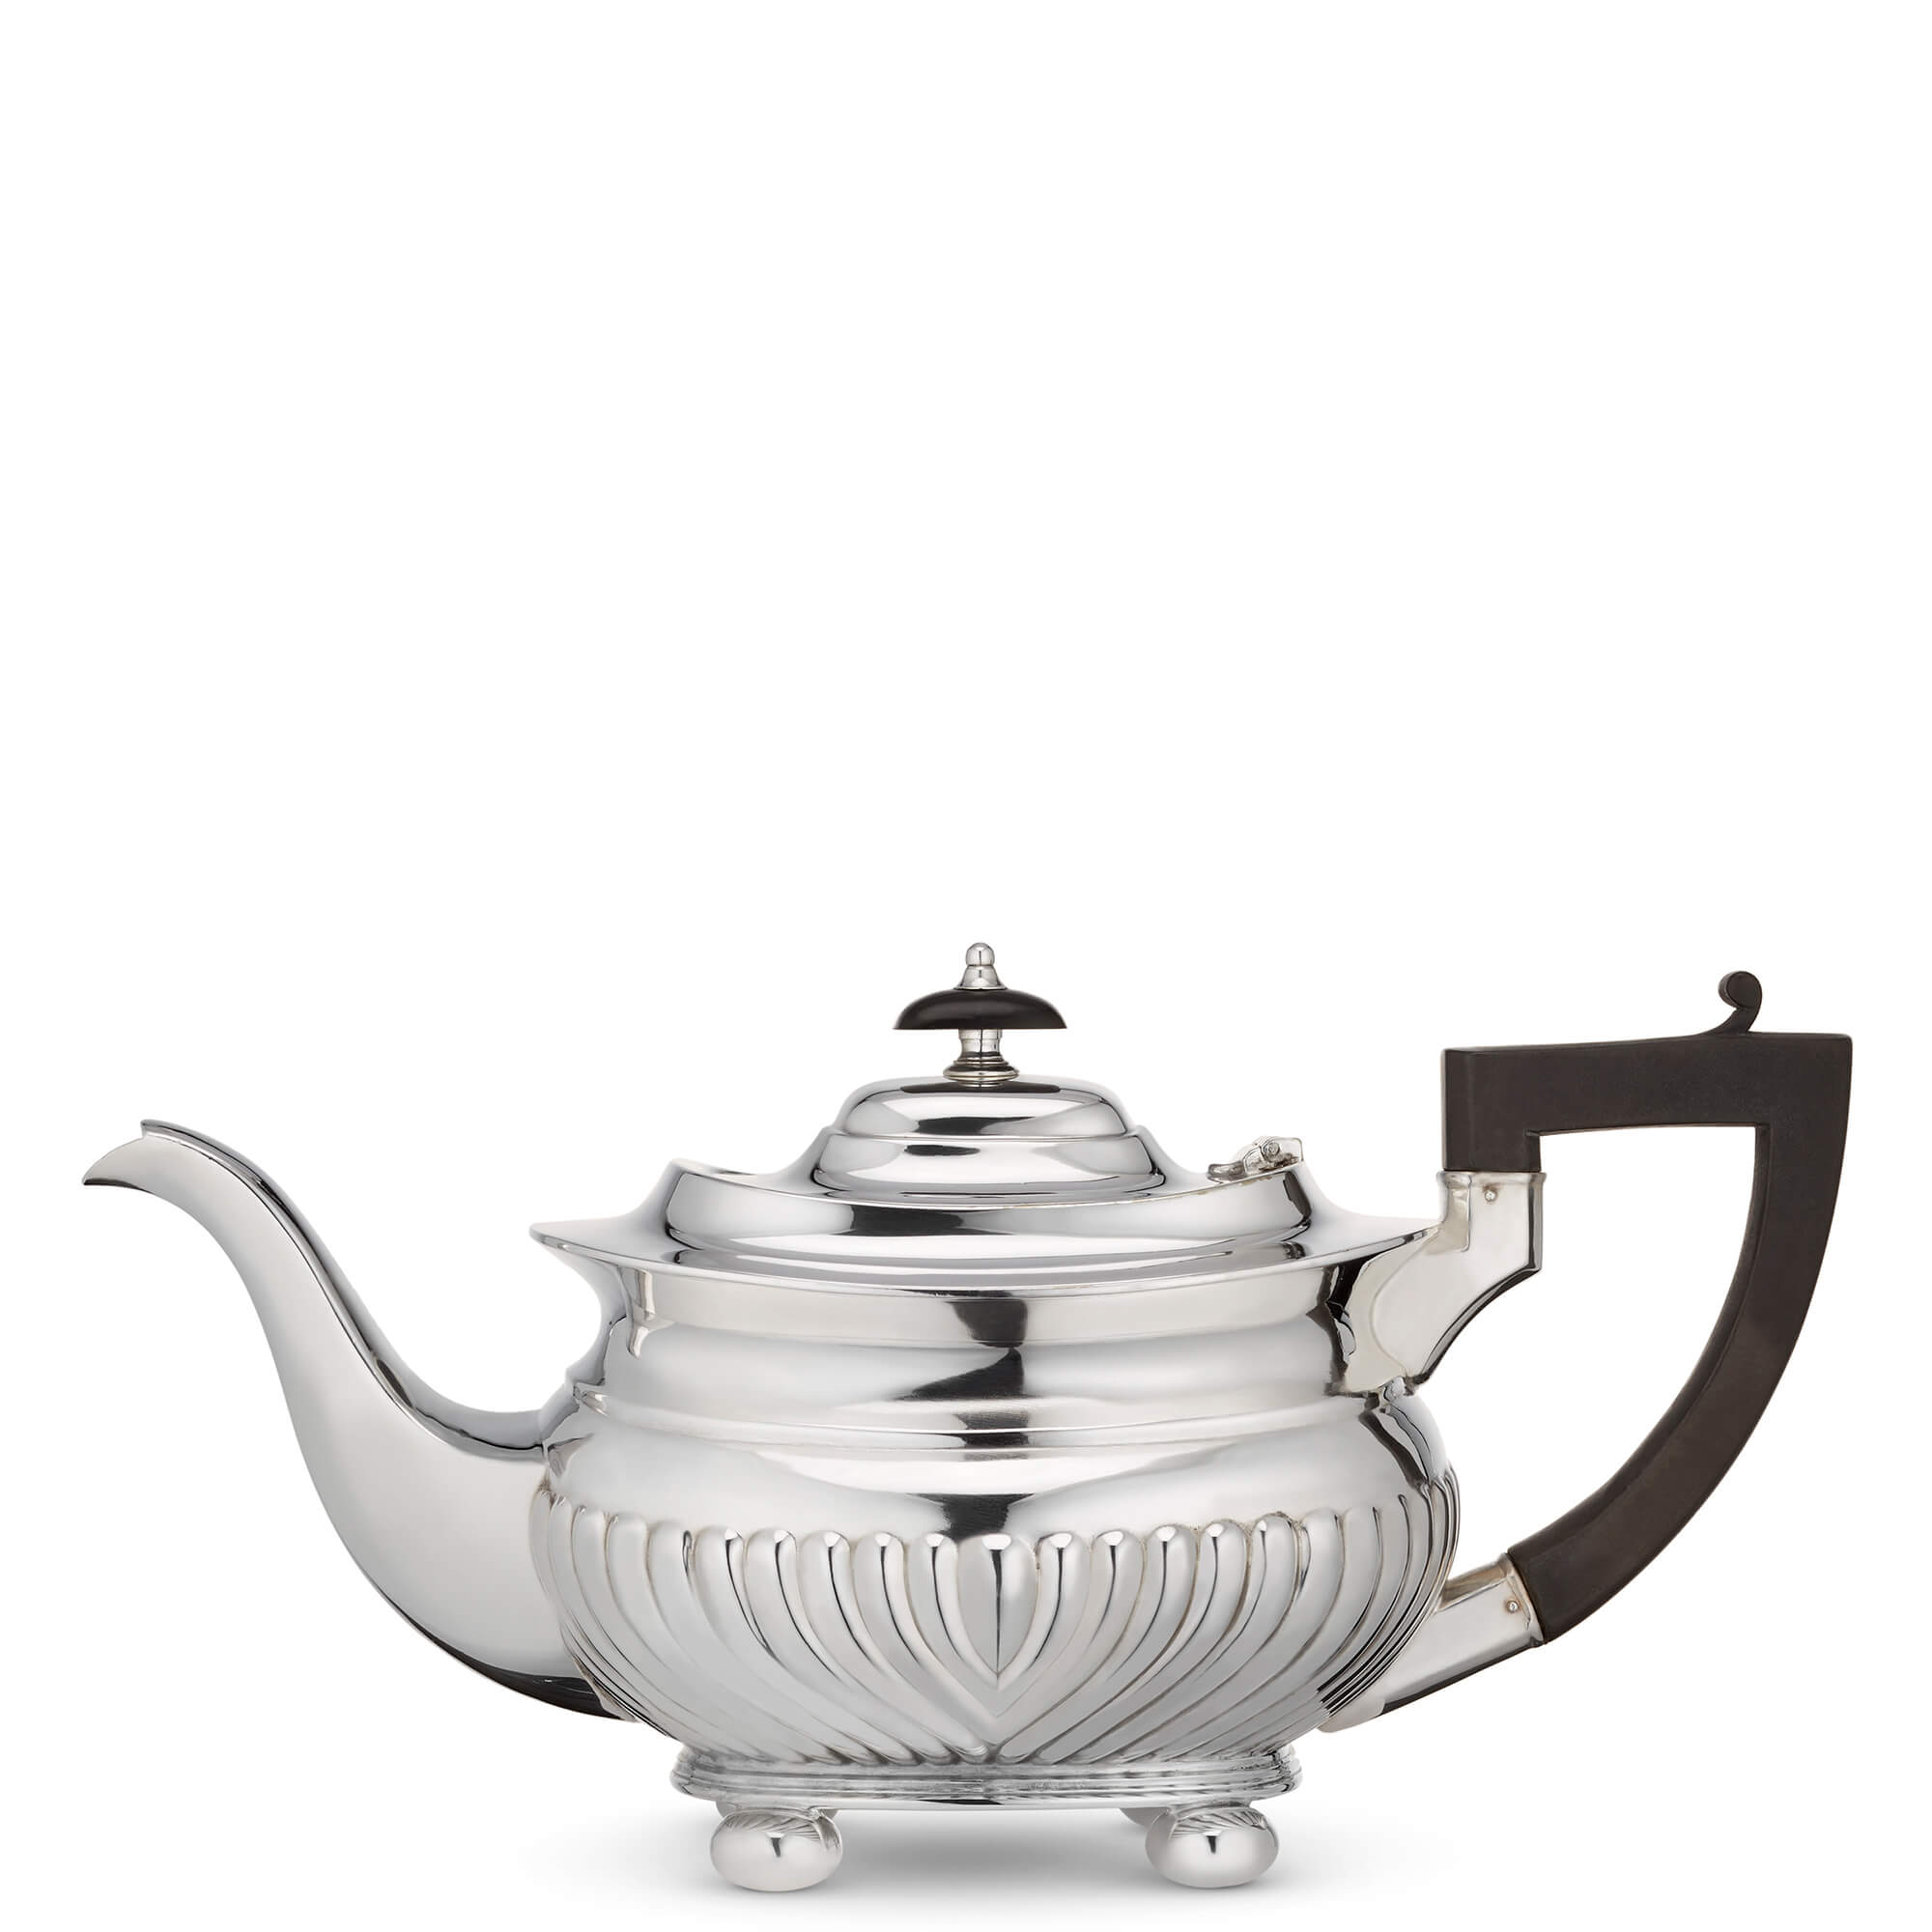 Vintage silver plated teapot - Silverware - The Wolseley